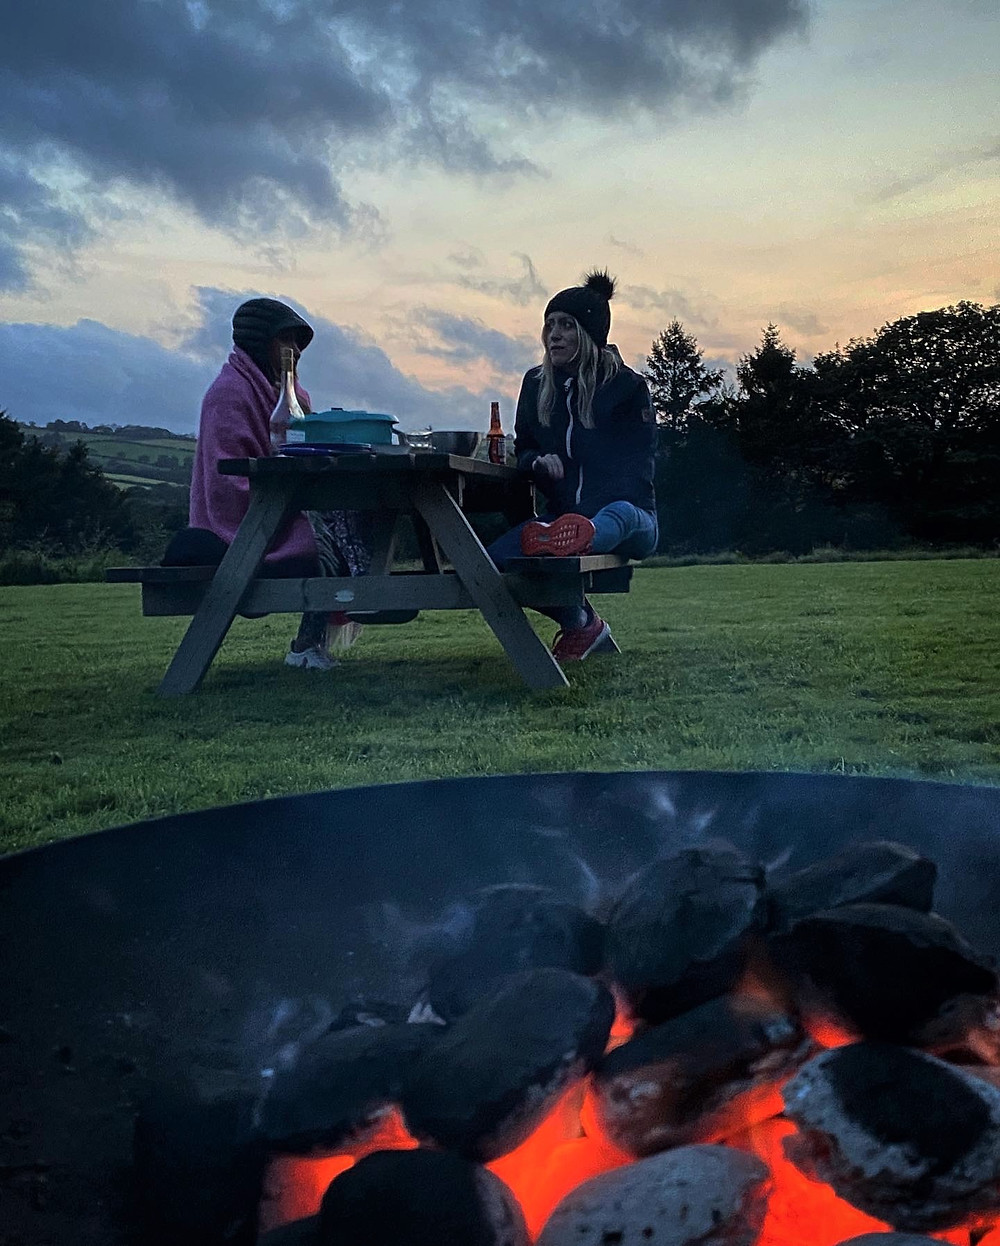 Friends sitting in front of a campfire at Top of the Woods Camping & Glamping, Pembrokeshire Wales.